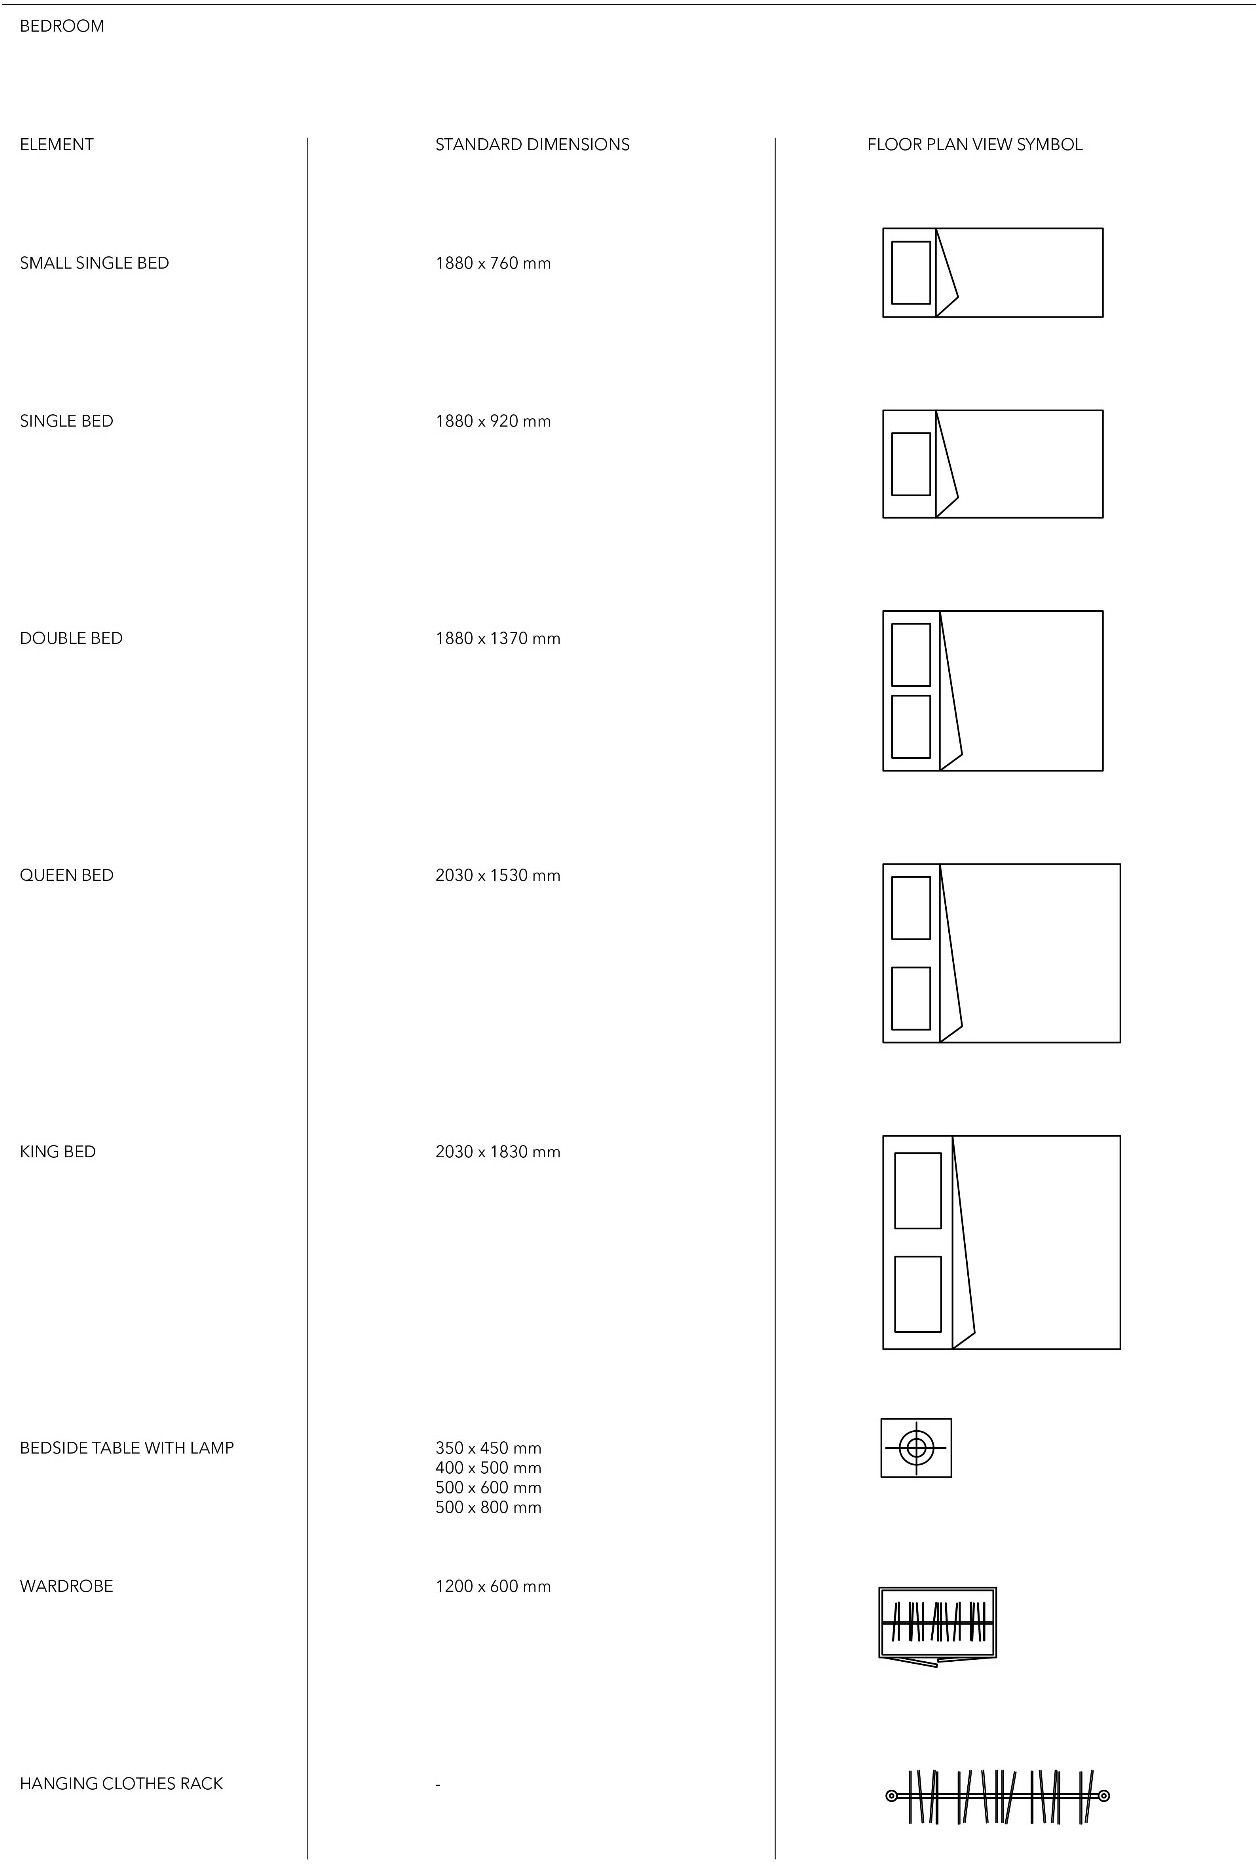 Floor Plan View Furniture Symbols